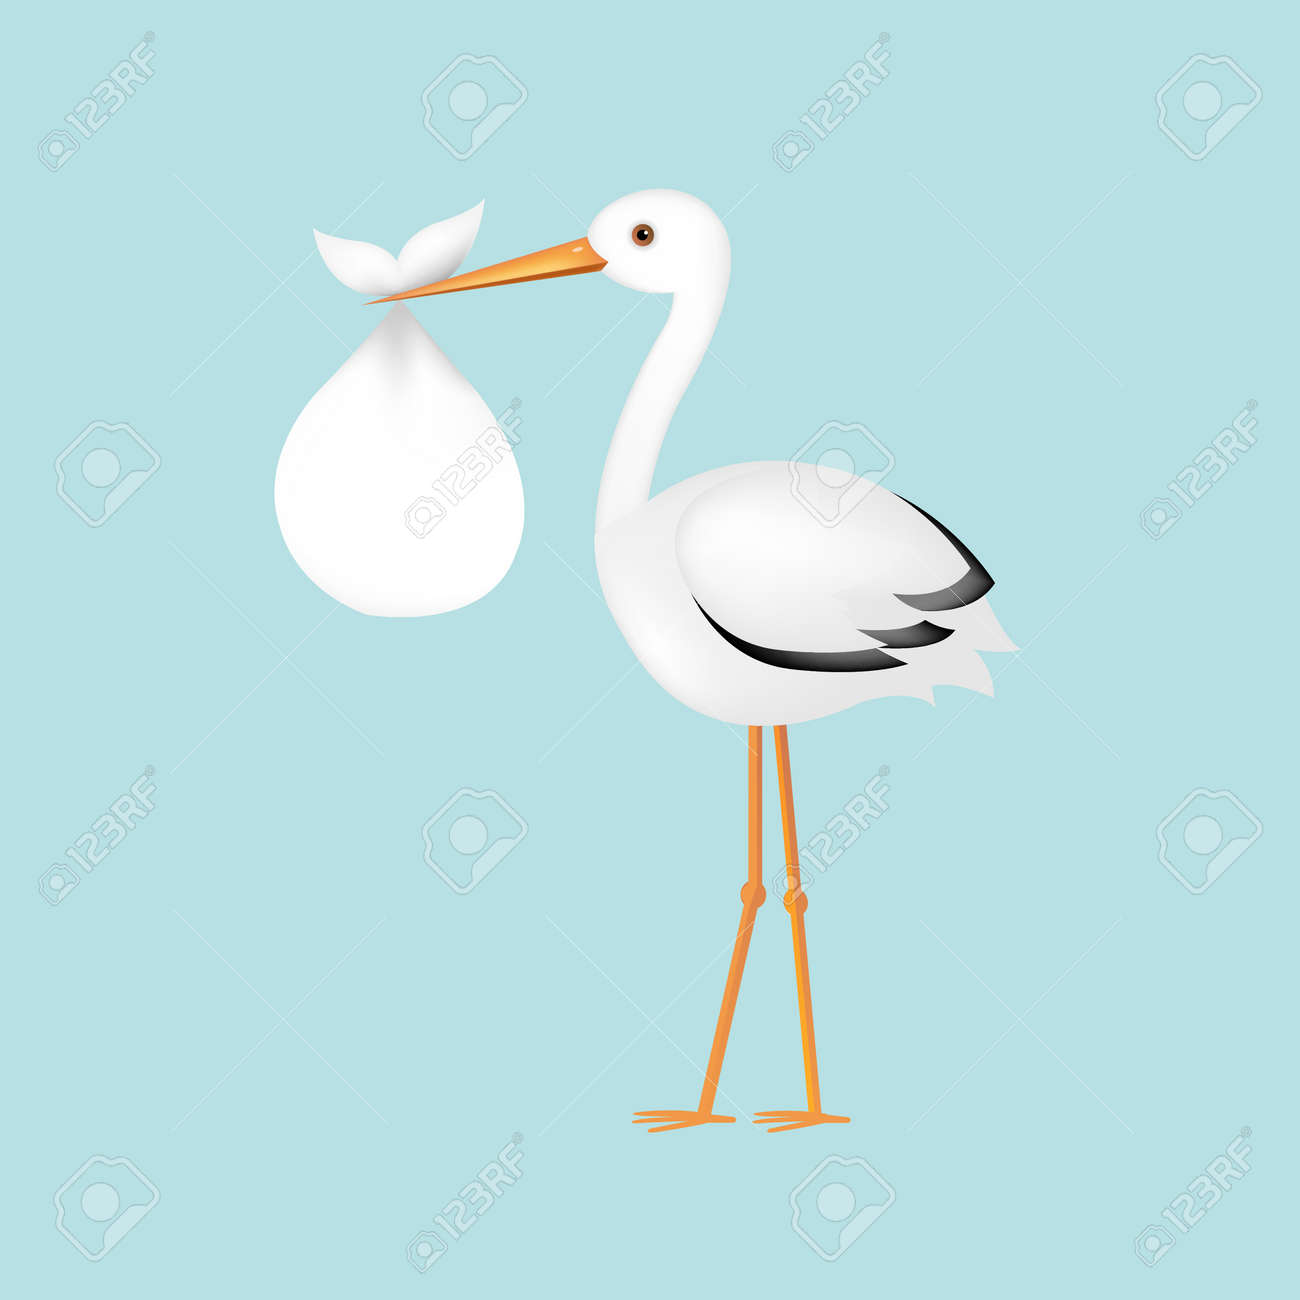 Stork With Baby With Gradient Mesh, Vector Illustration - 34381350